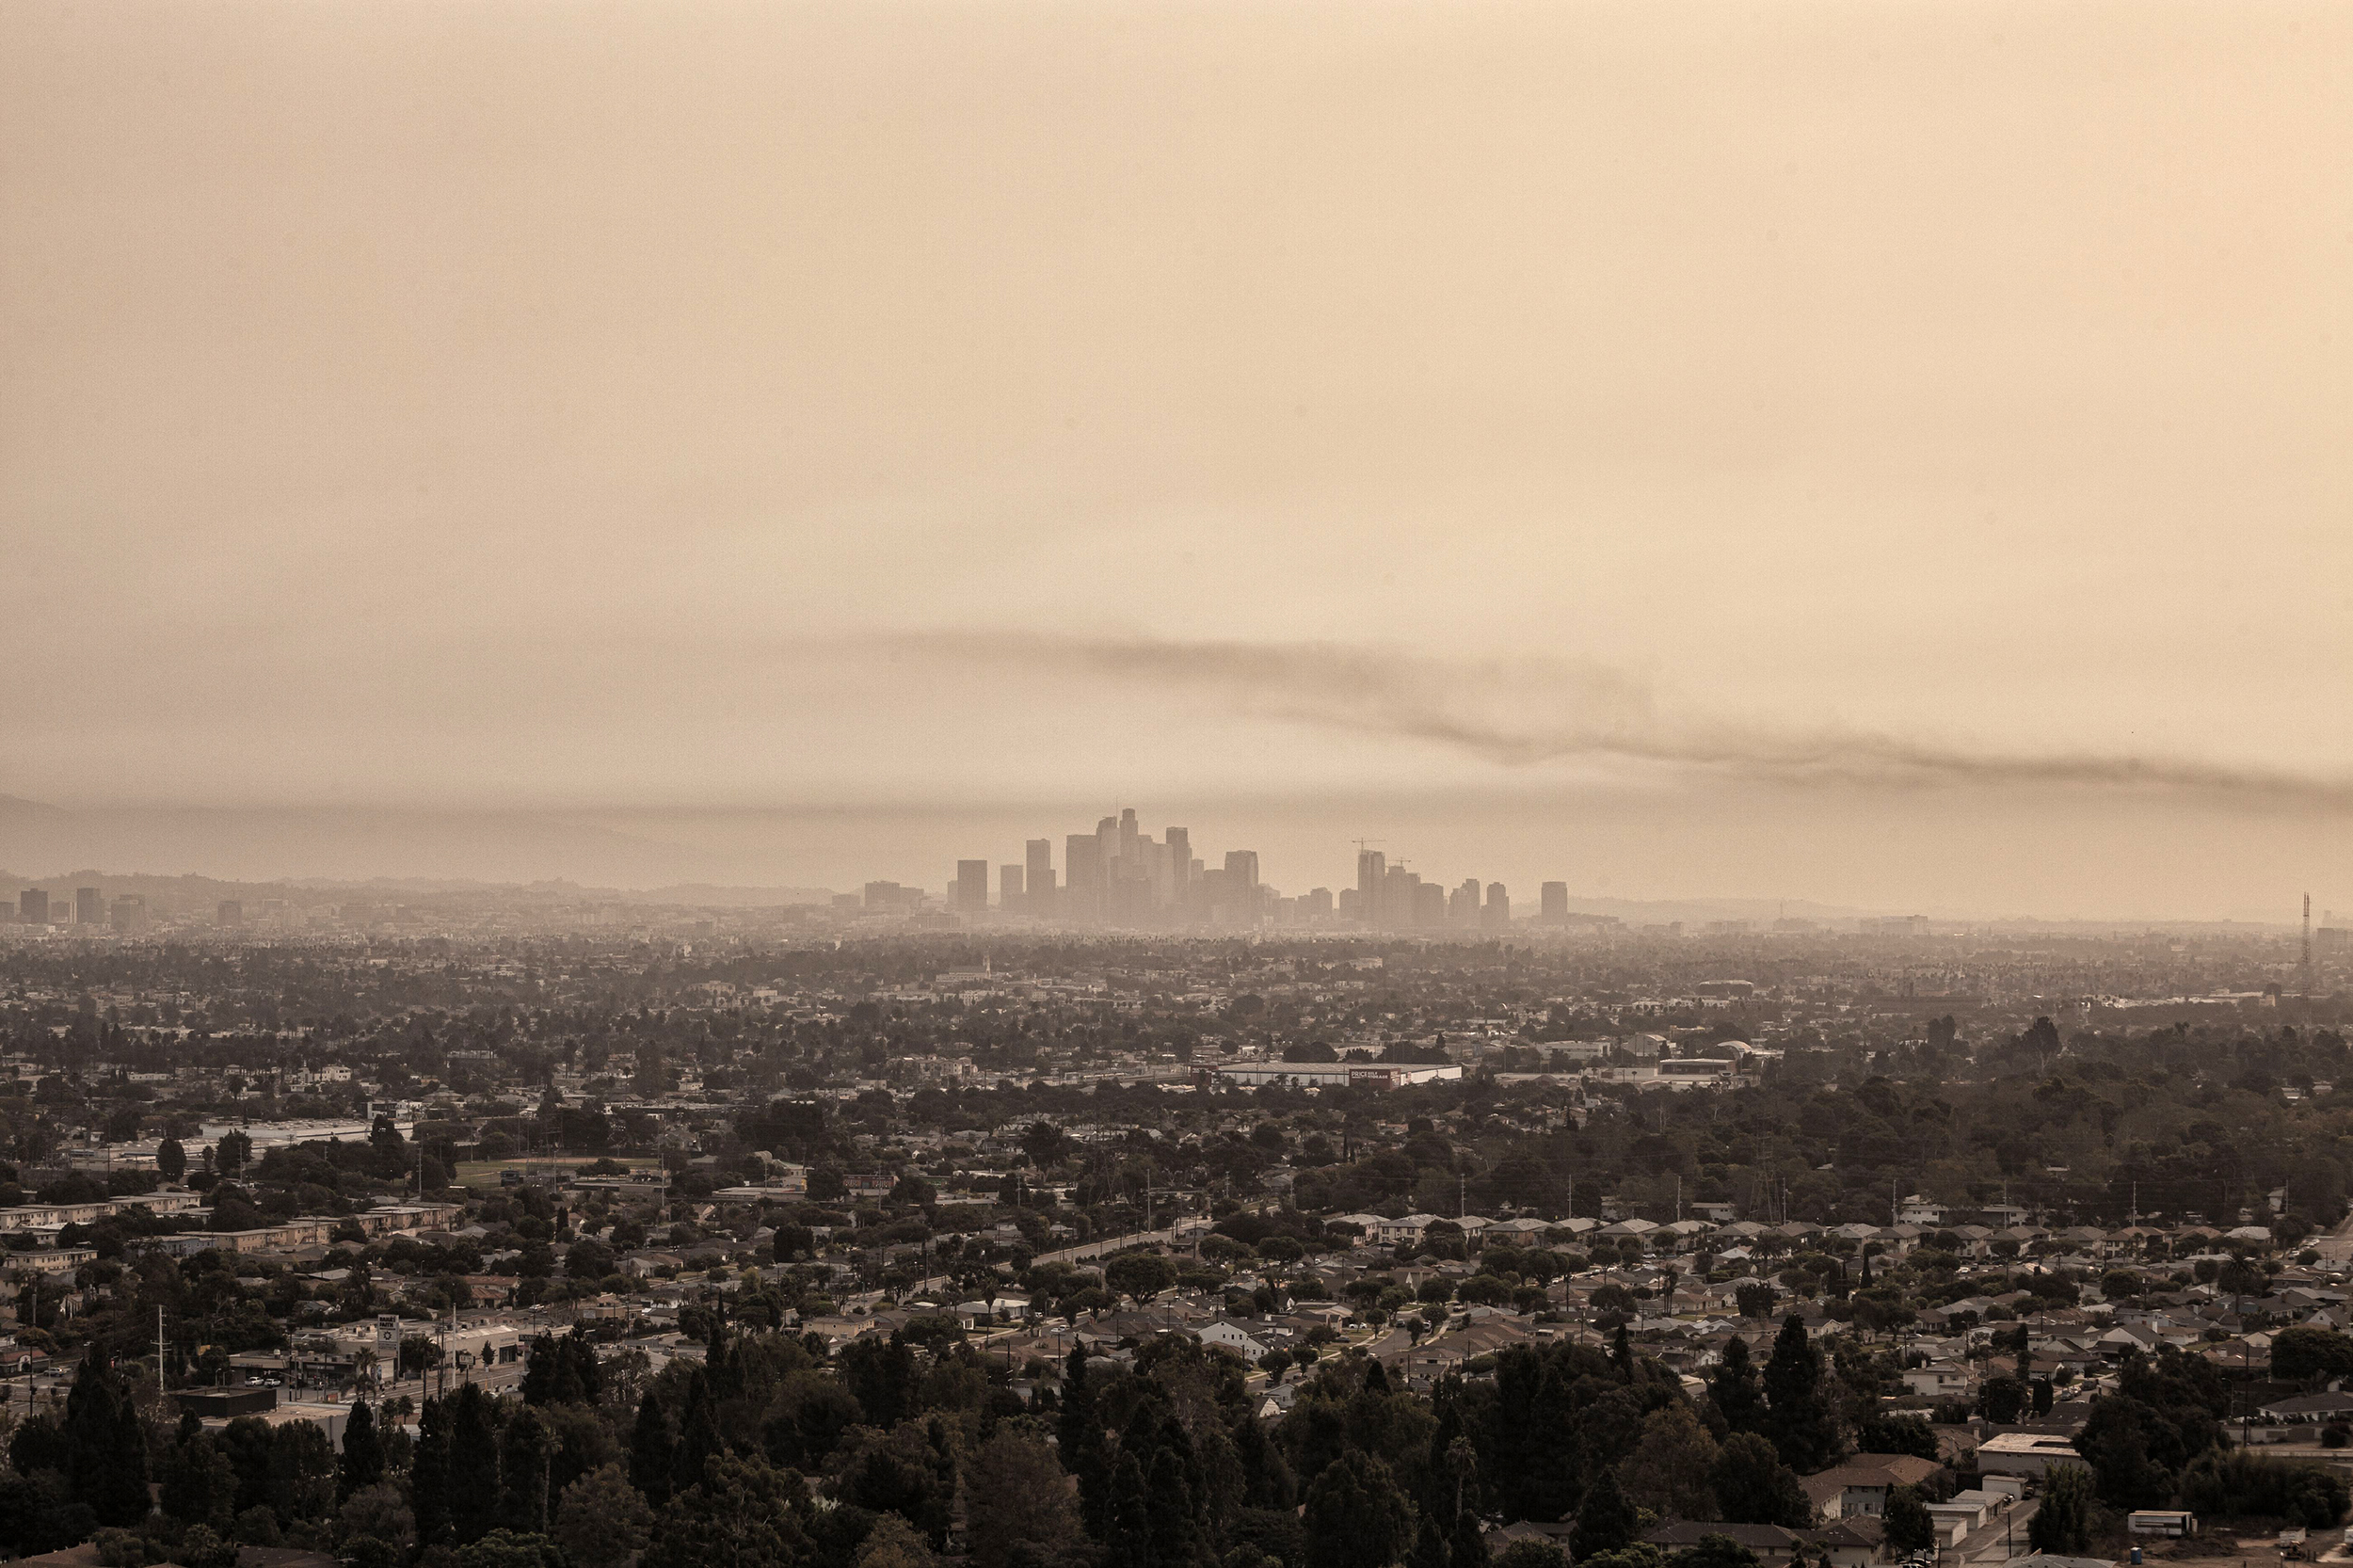 Does your state meet WHO air pollution standards? See levels across U.S.